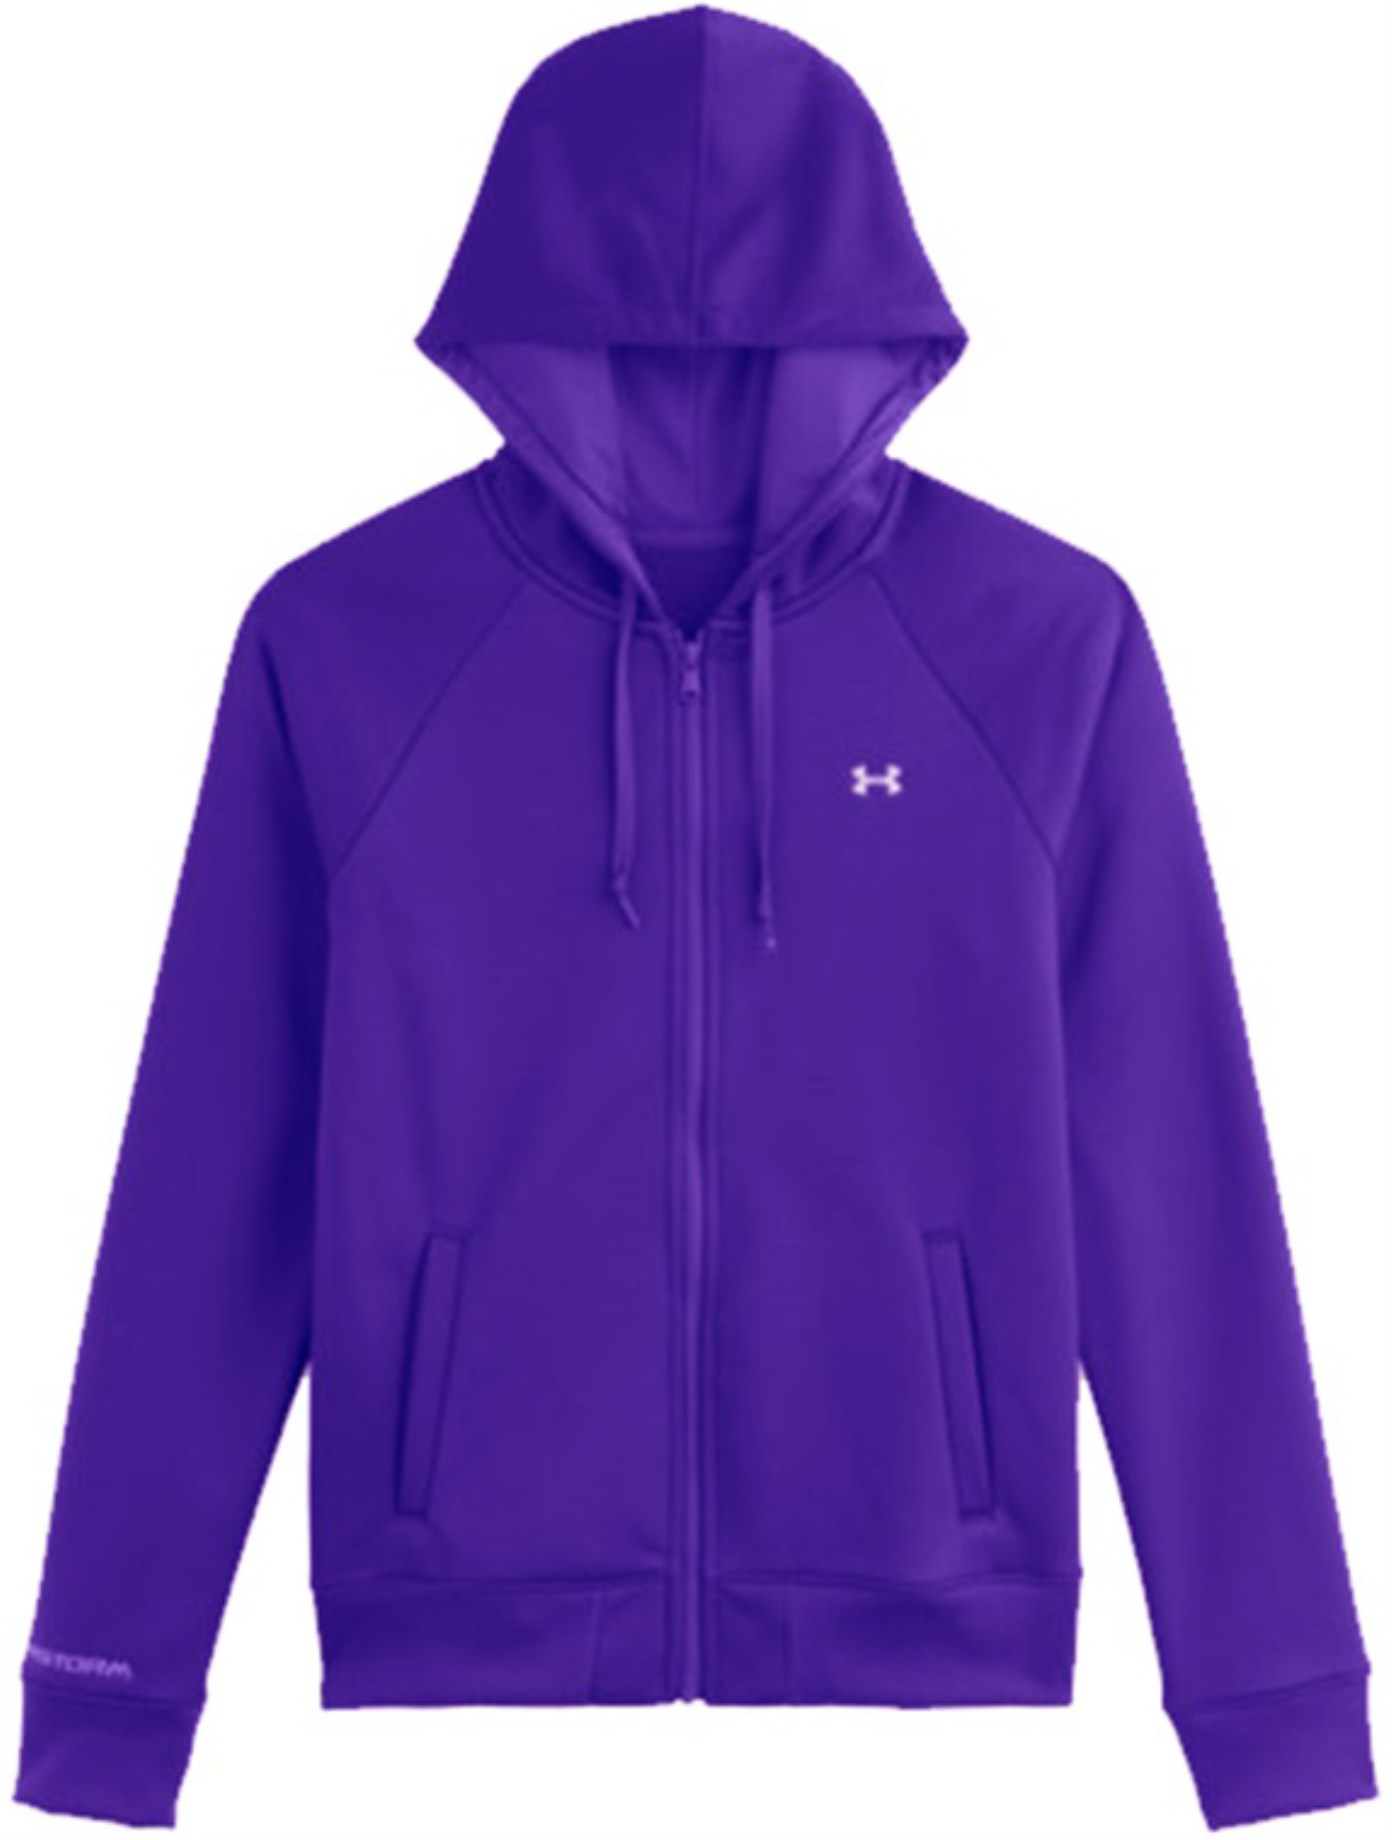 Under Armour Fleece Full Zip Hoodie,  - Under Armour